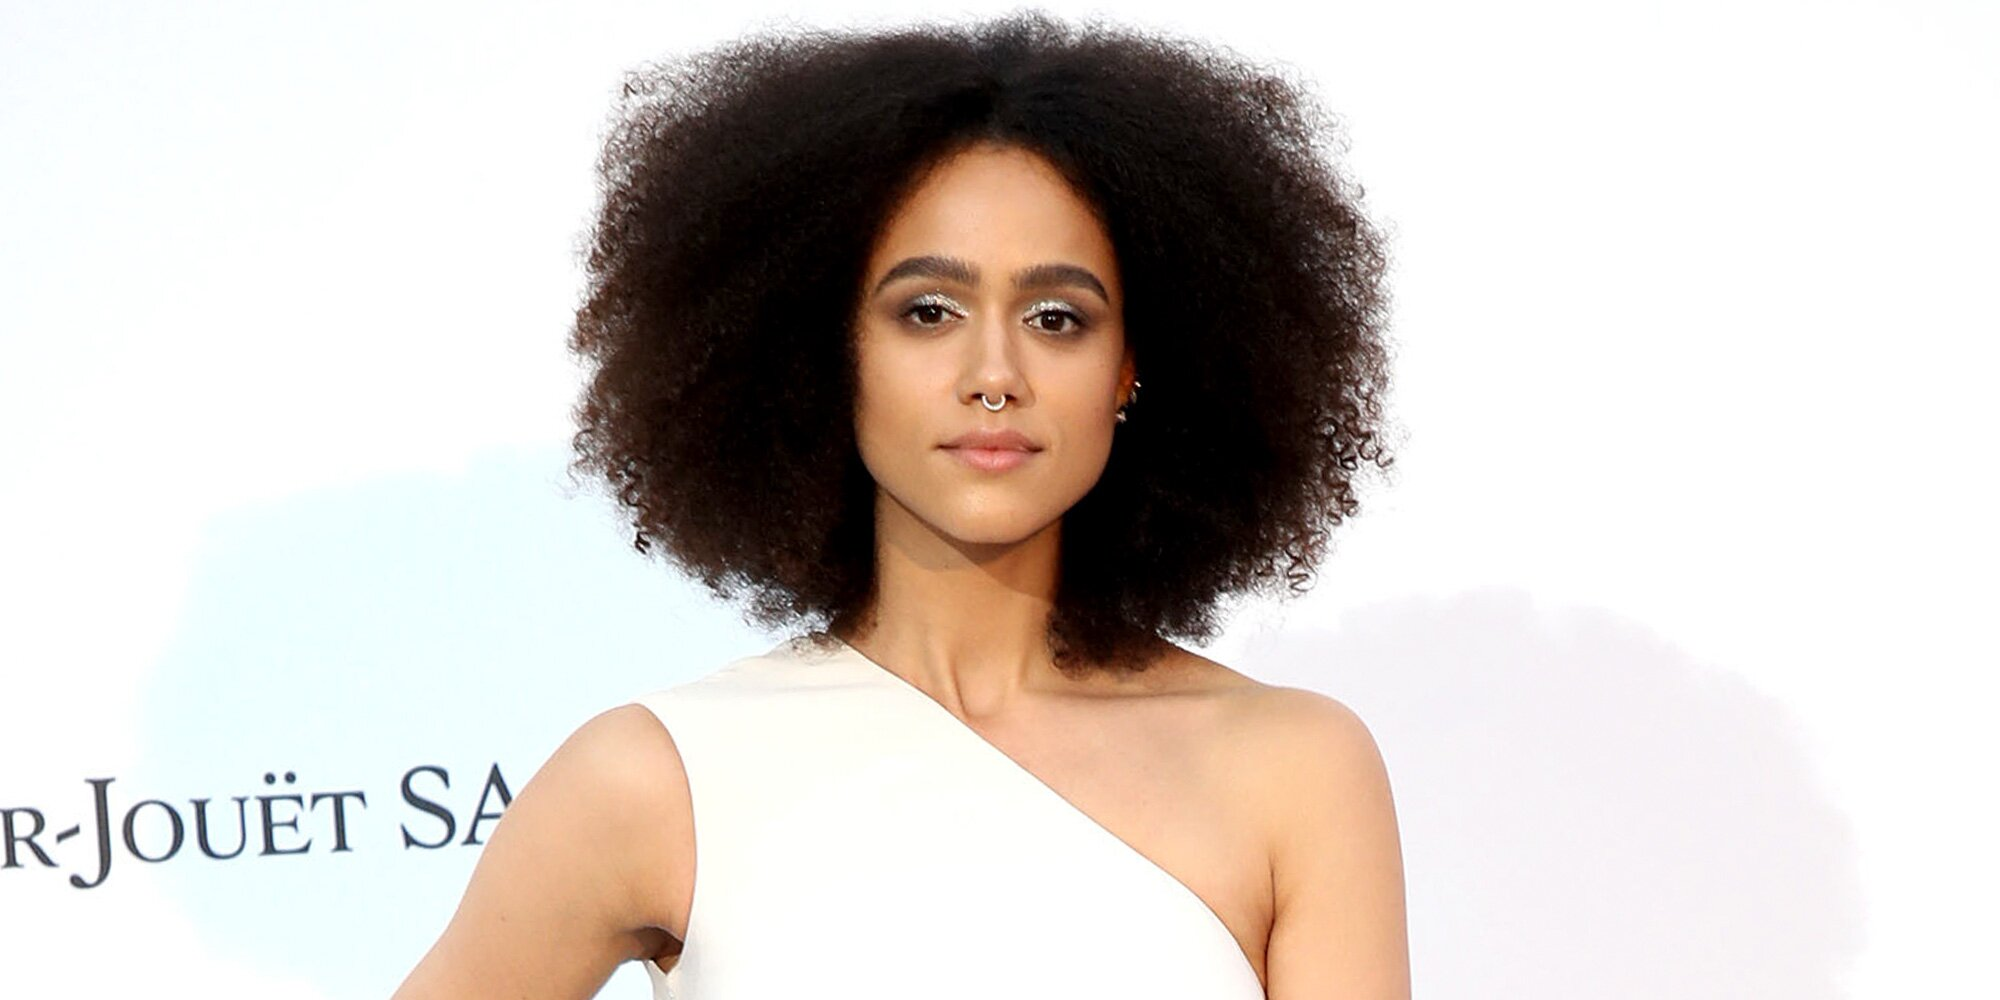 Nathalie Emmanuel says there's a reason so many Black British actors find more success in Hollywood